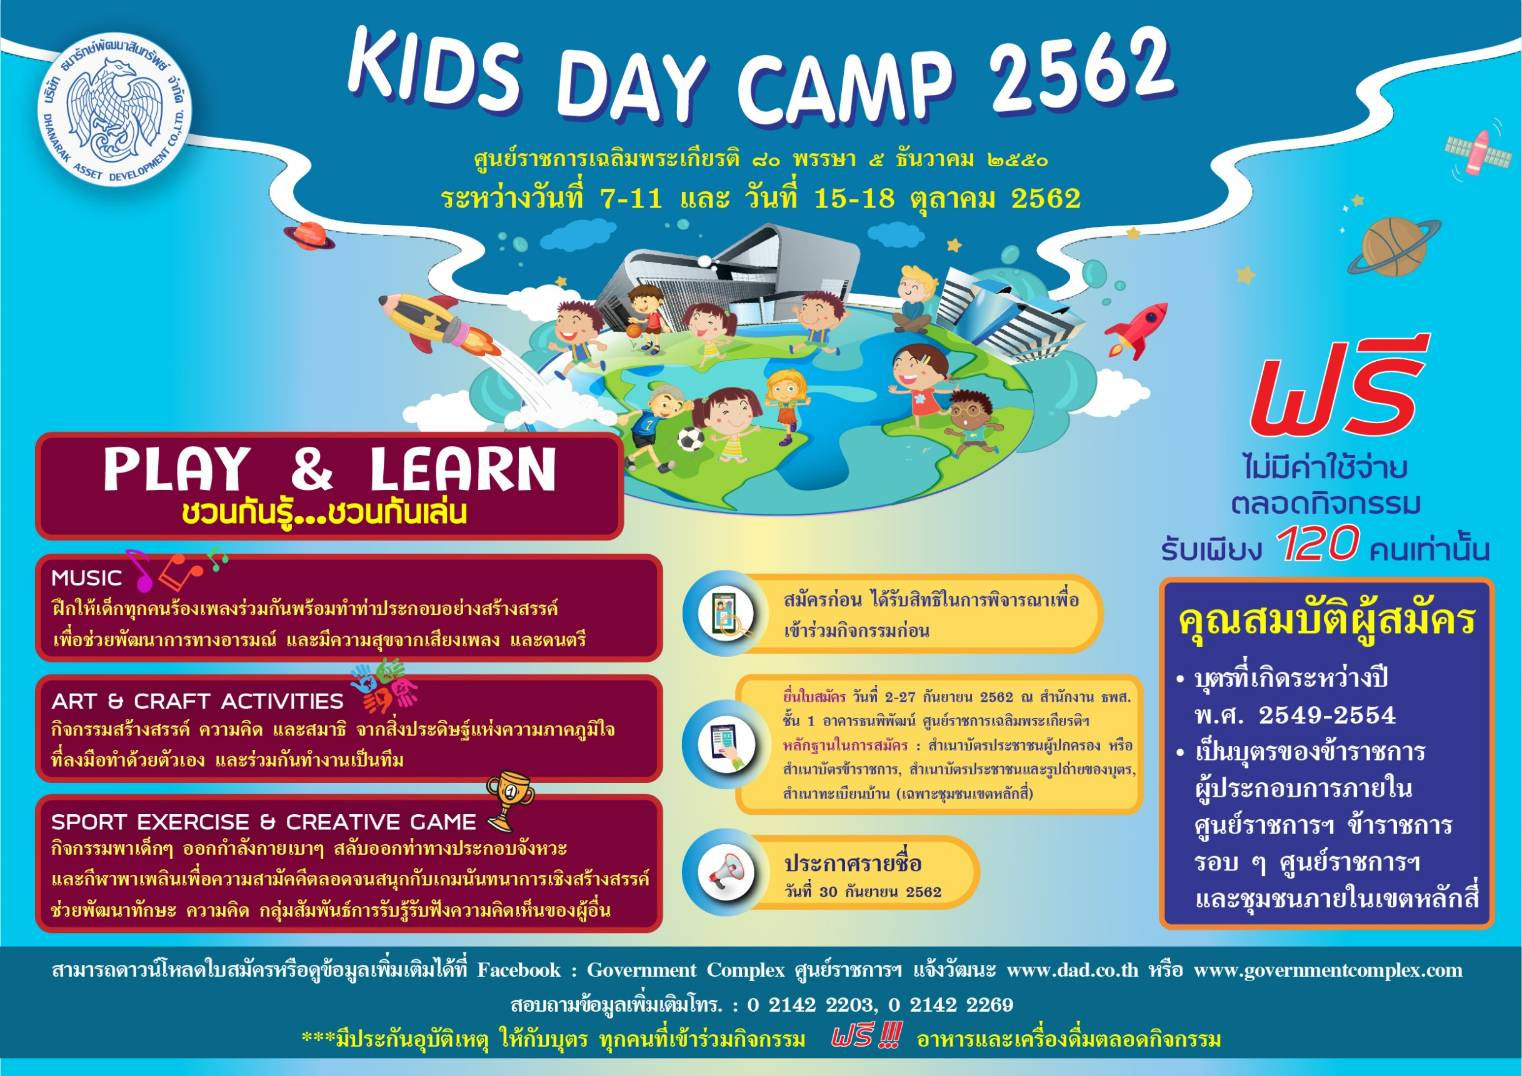 KIDS DAY CAMP 2562